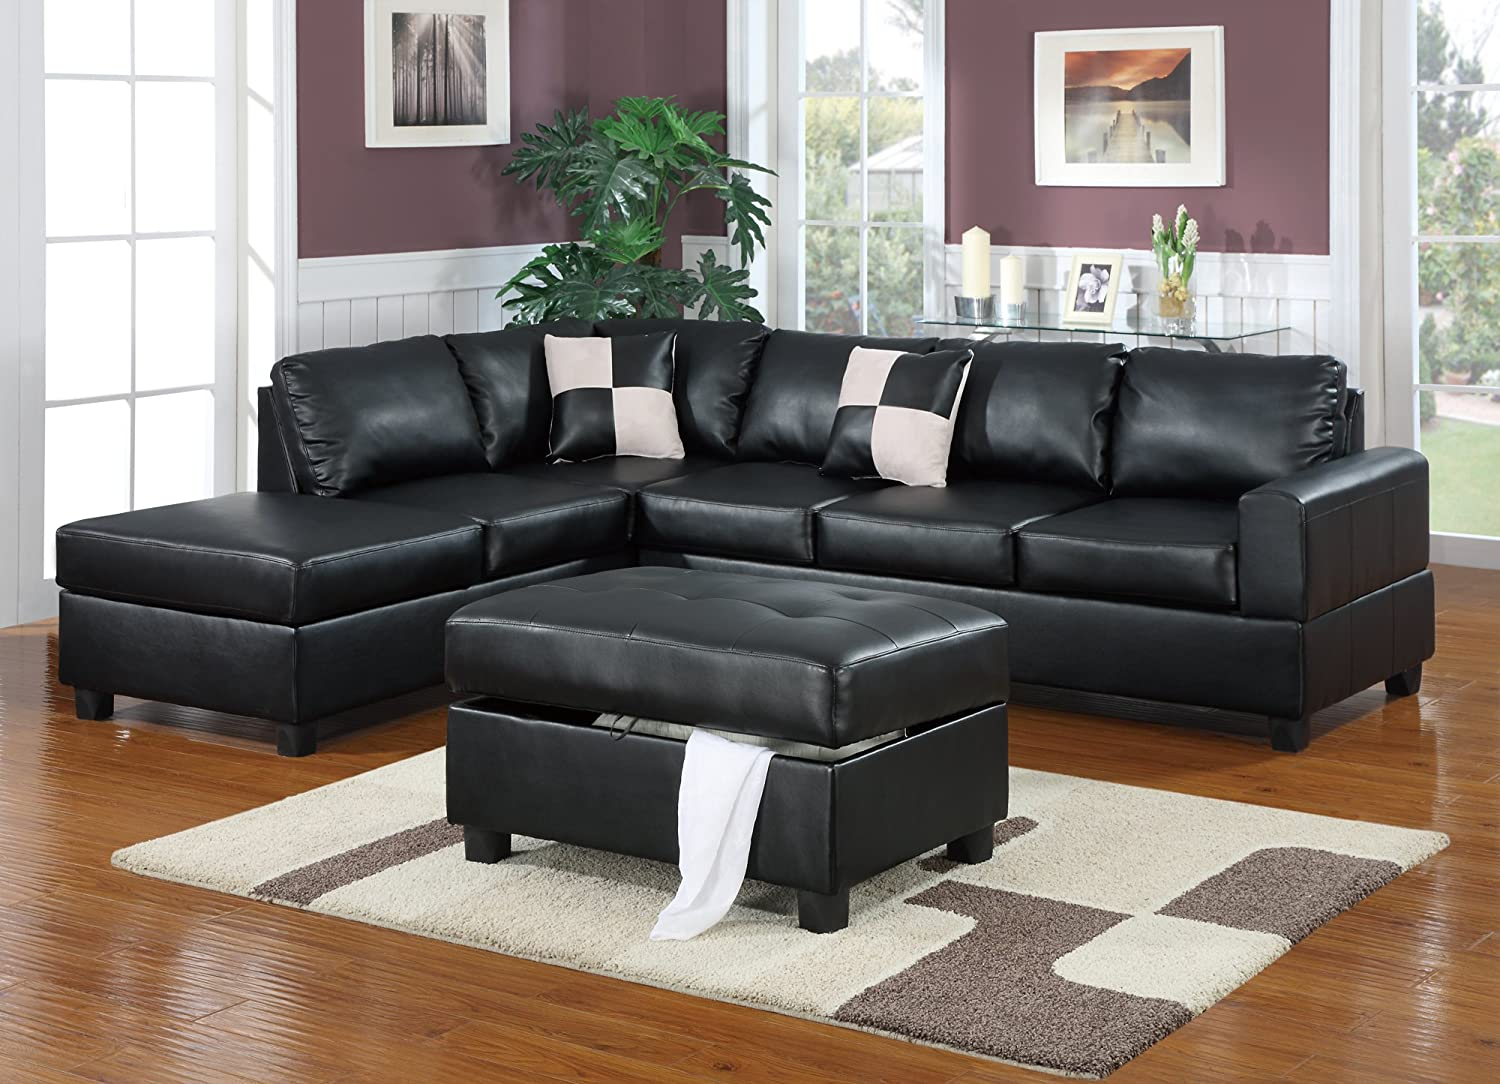 Amazoncom Bobkona Hampshire Collection 3Piece Sectional Sofa